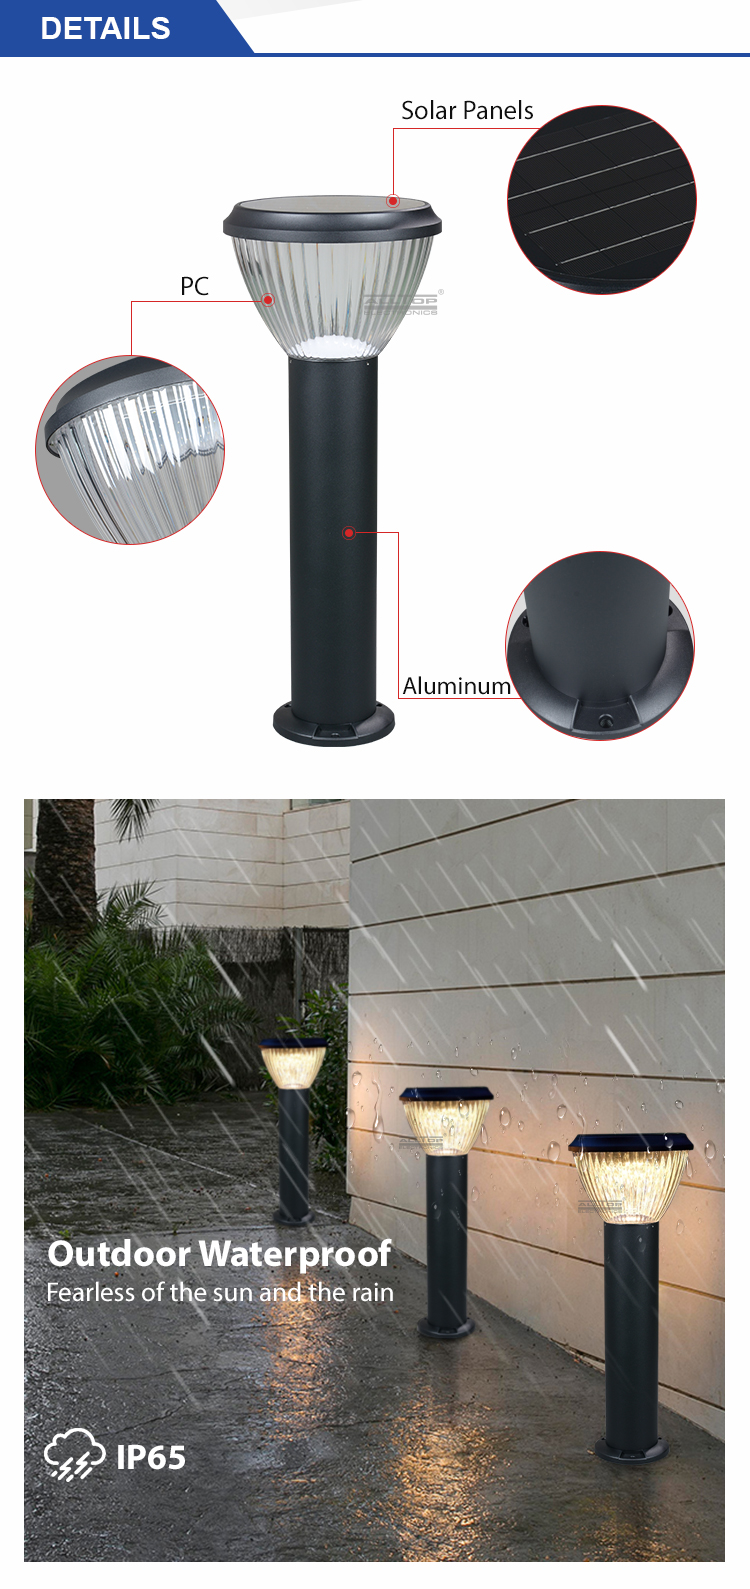 ALLTOP High quality 5w ip65 outdoor waterproof led solar garden lamp price